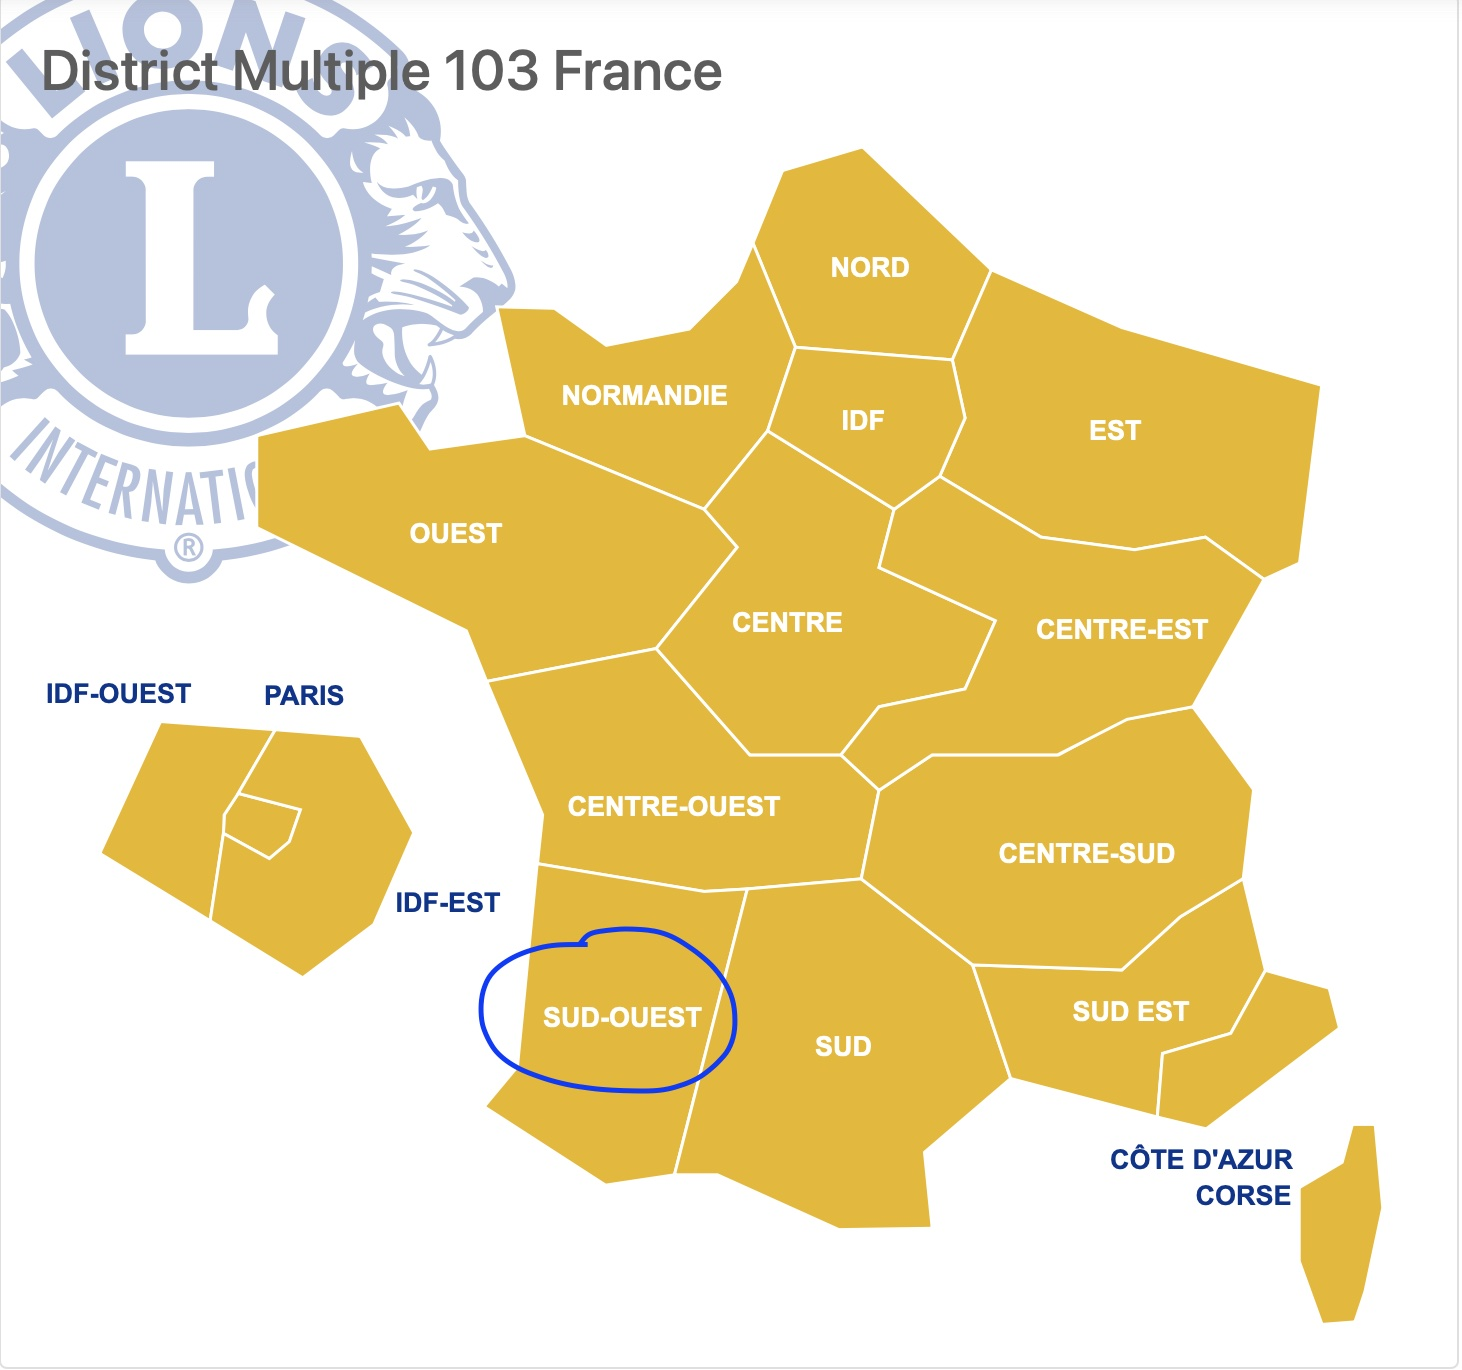 District SUD-OUEST